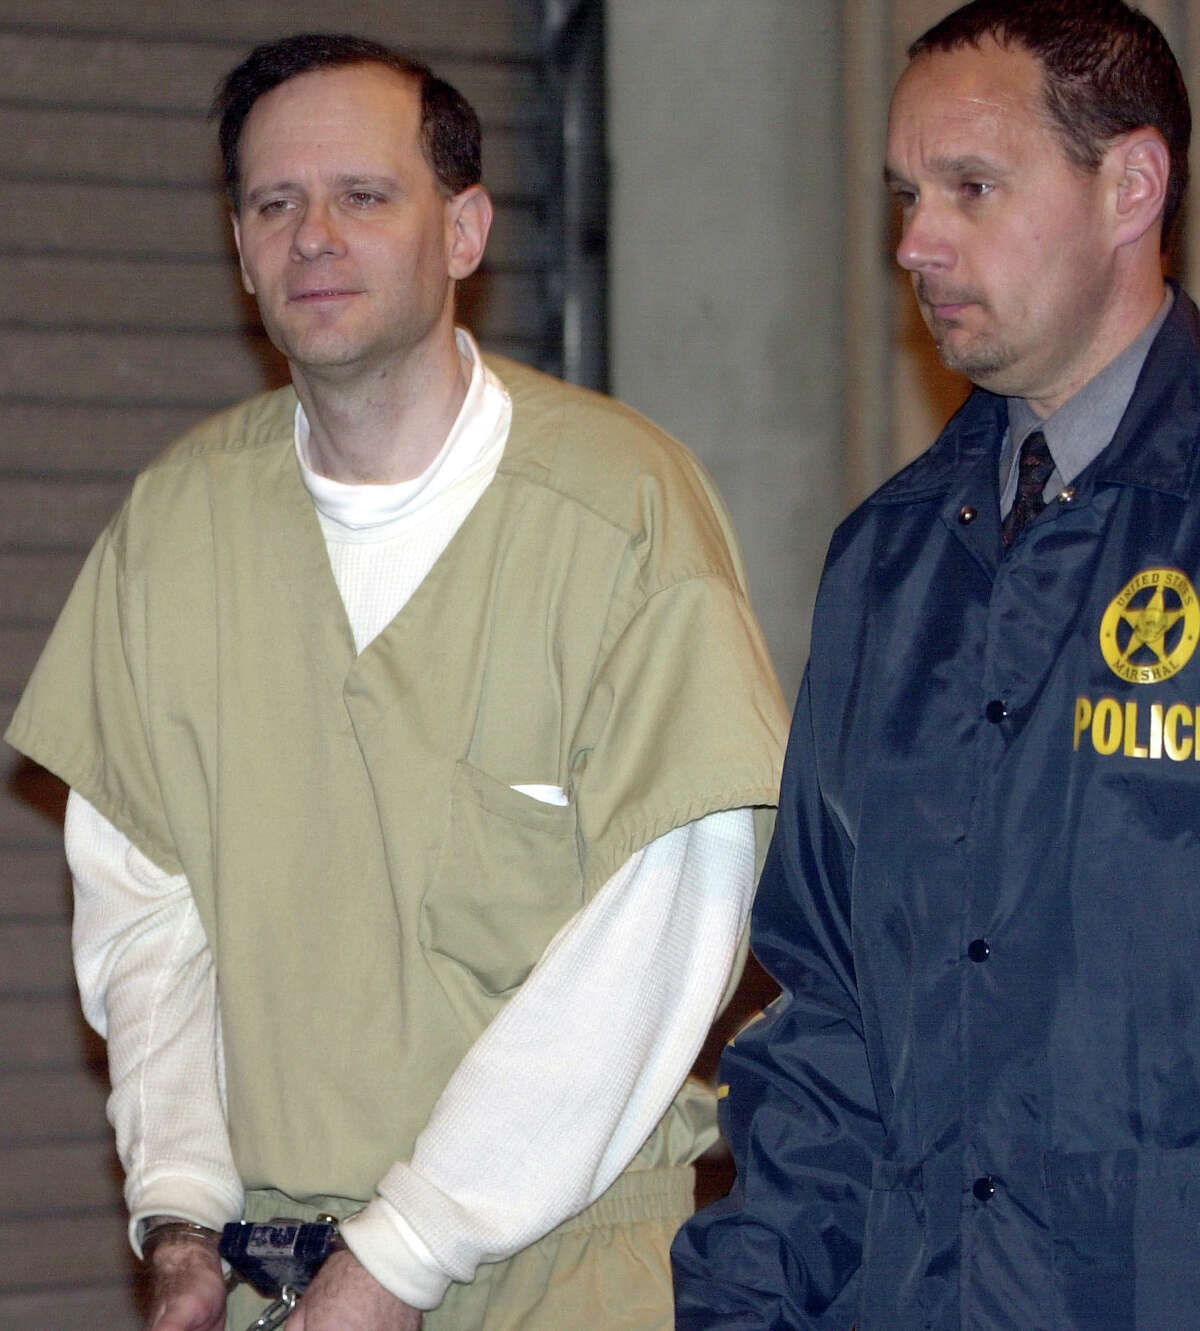 FILE - In this May 15, 2002 file photo, Martin Frankel, a financier accused of stealing more than $200 million from insurance companies, is escorted from U.S. District Court in New Haven, Conn. Frankel was sentenced in 2004 to 17 years behind bars, and released to a halfway house in September 2015. Frankel is due back in New Haven federal court Thursday, Oct. 1, 2015, less than a month after getting out of prison, charged with violating the terms of his release. (AP Photo/Bob Child, File)